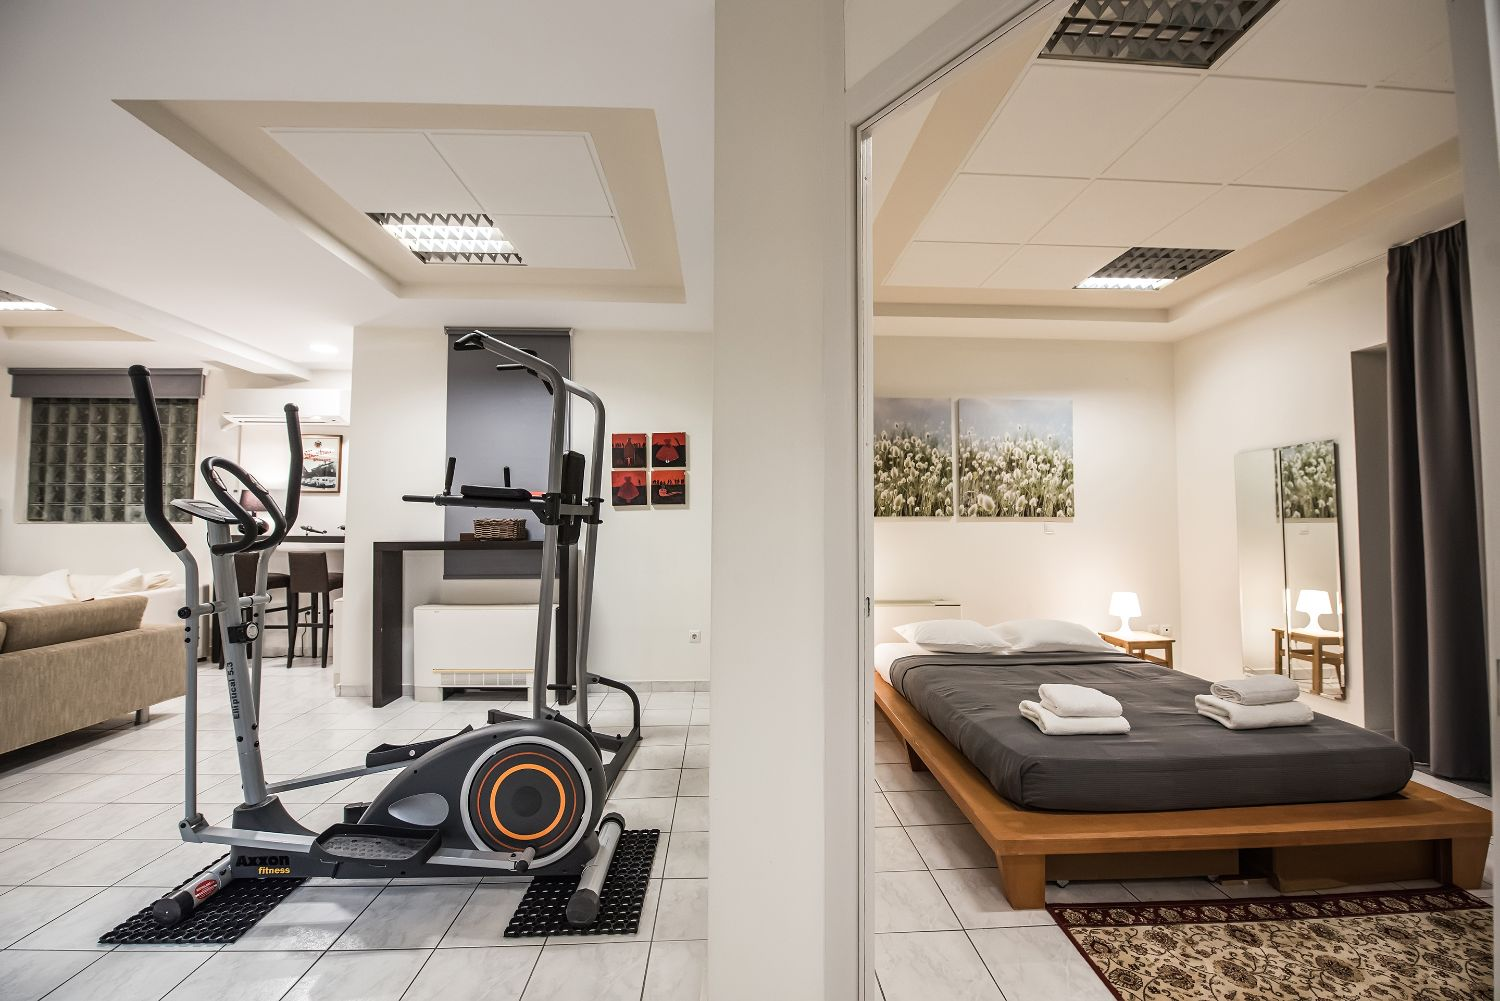 Bedroom 3 and Home Gym